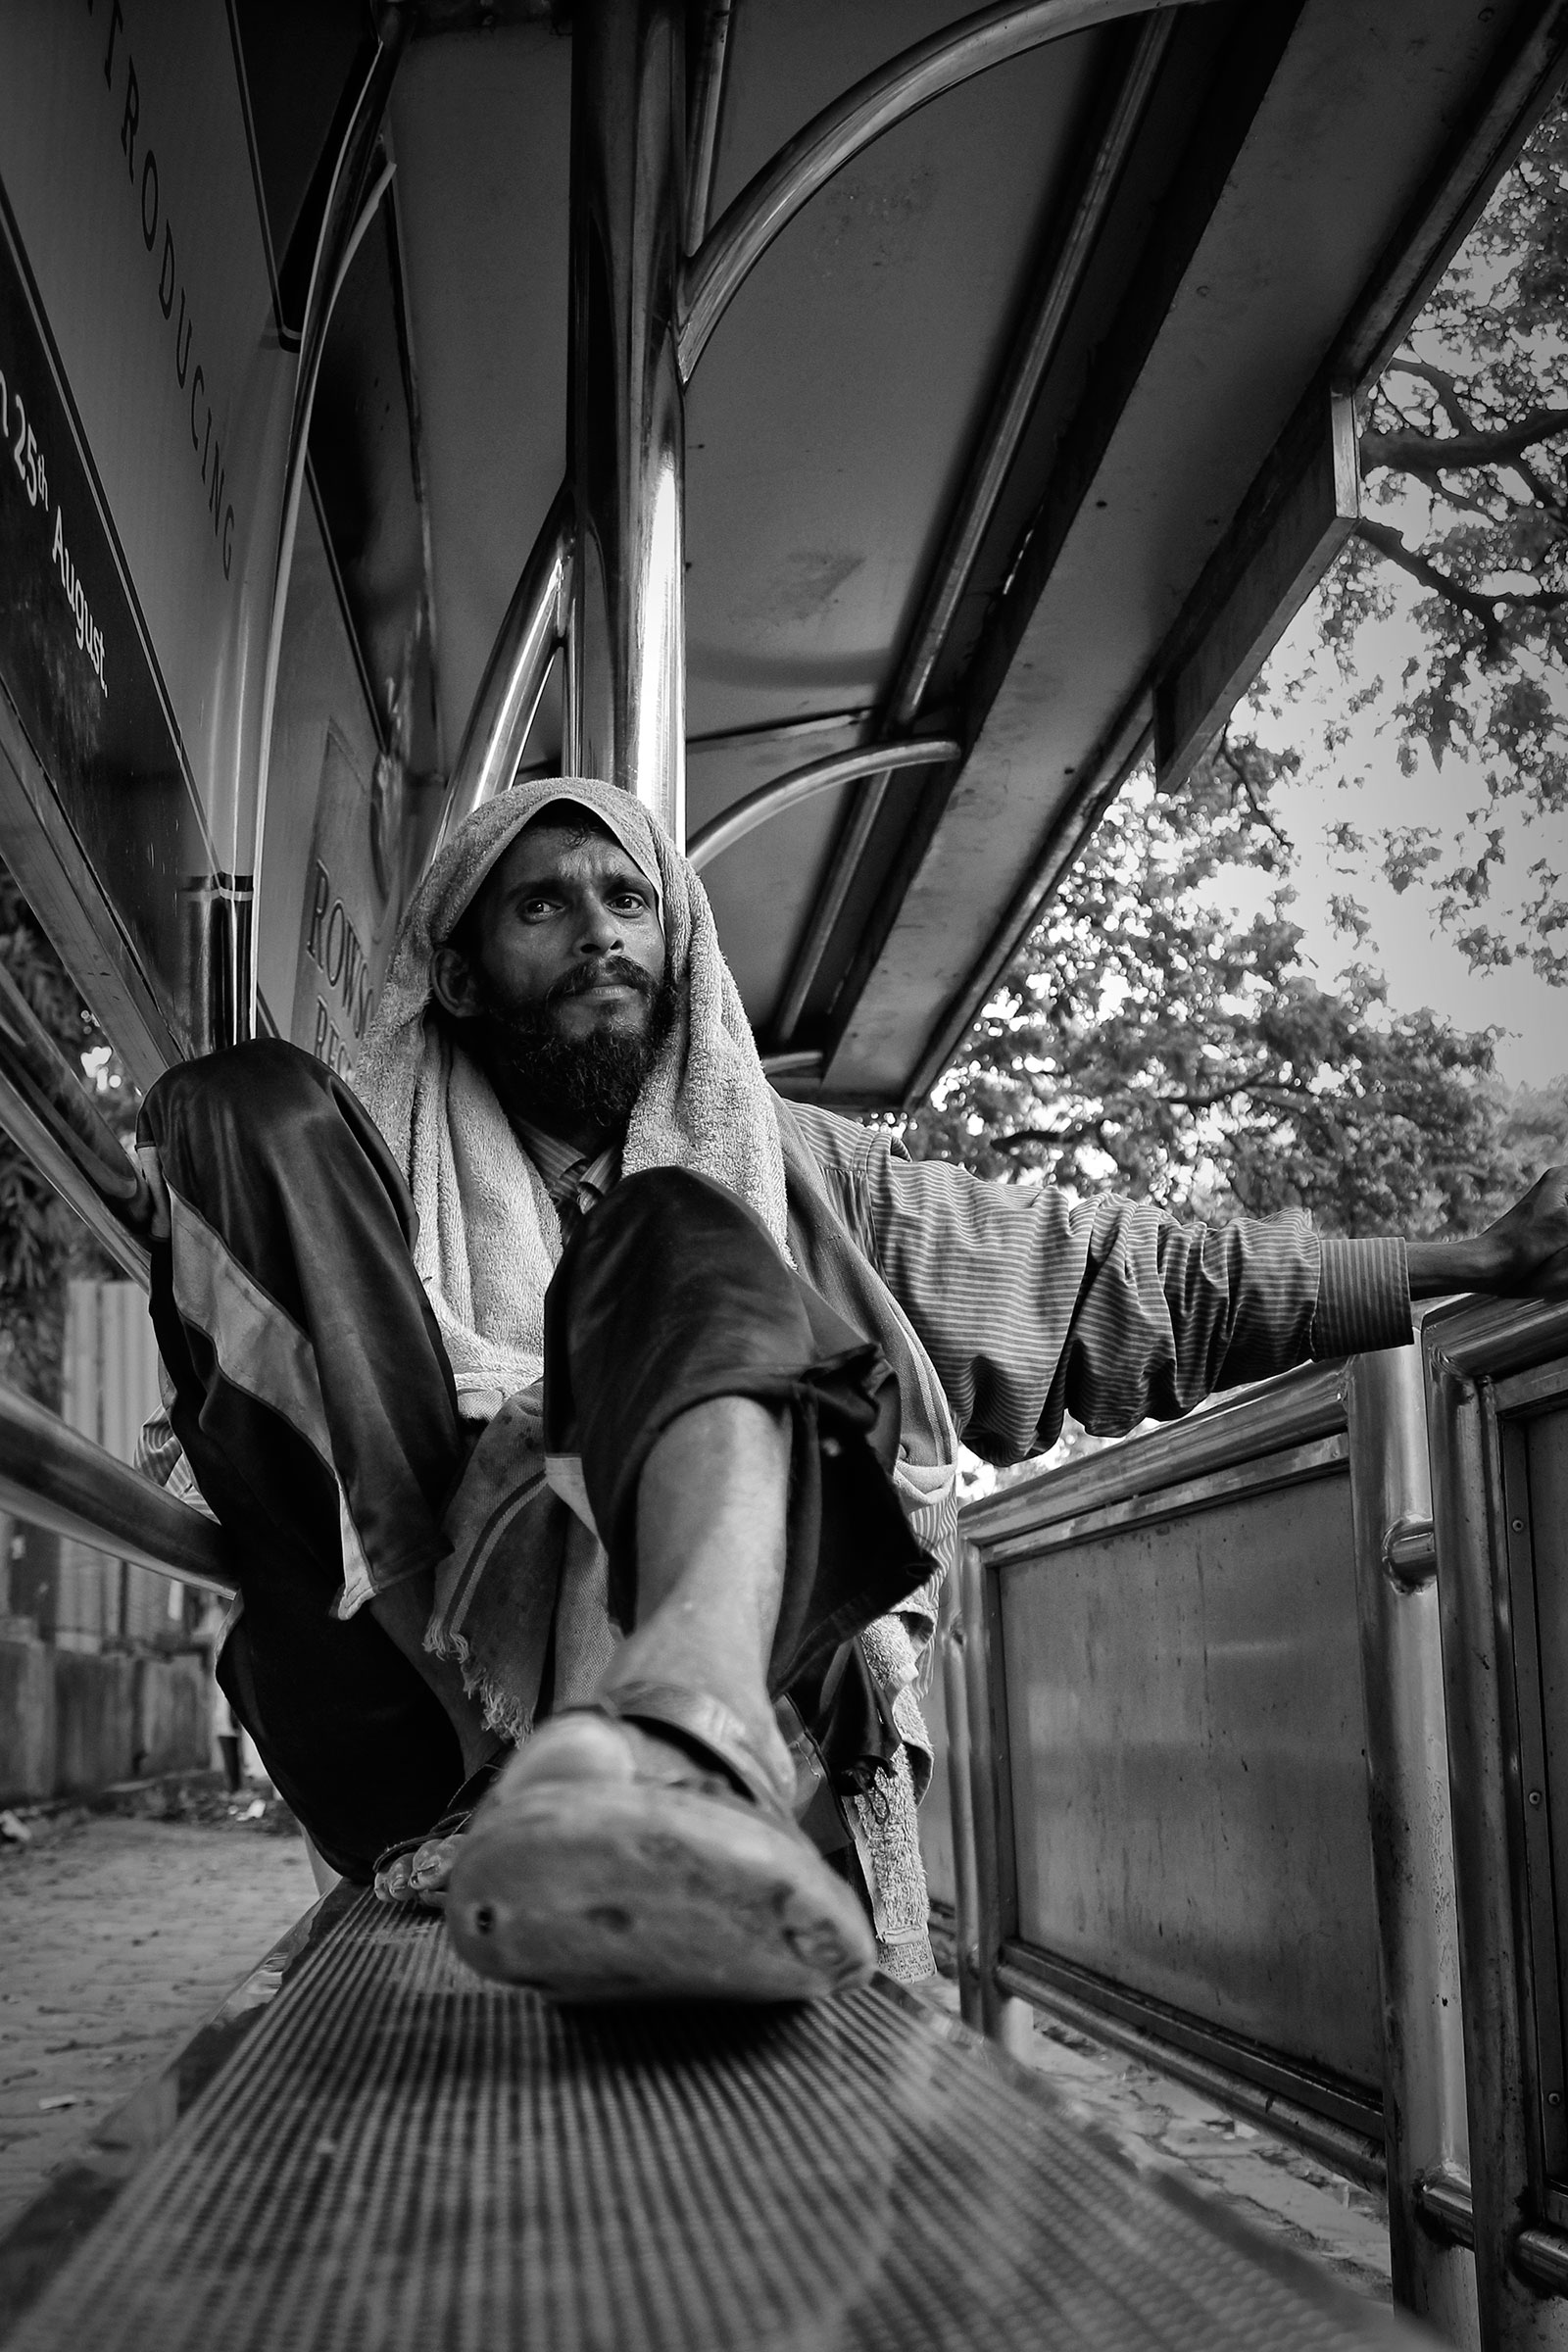 Black and white portrait of a homeless man at a bus stop